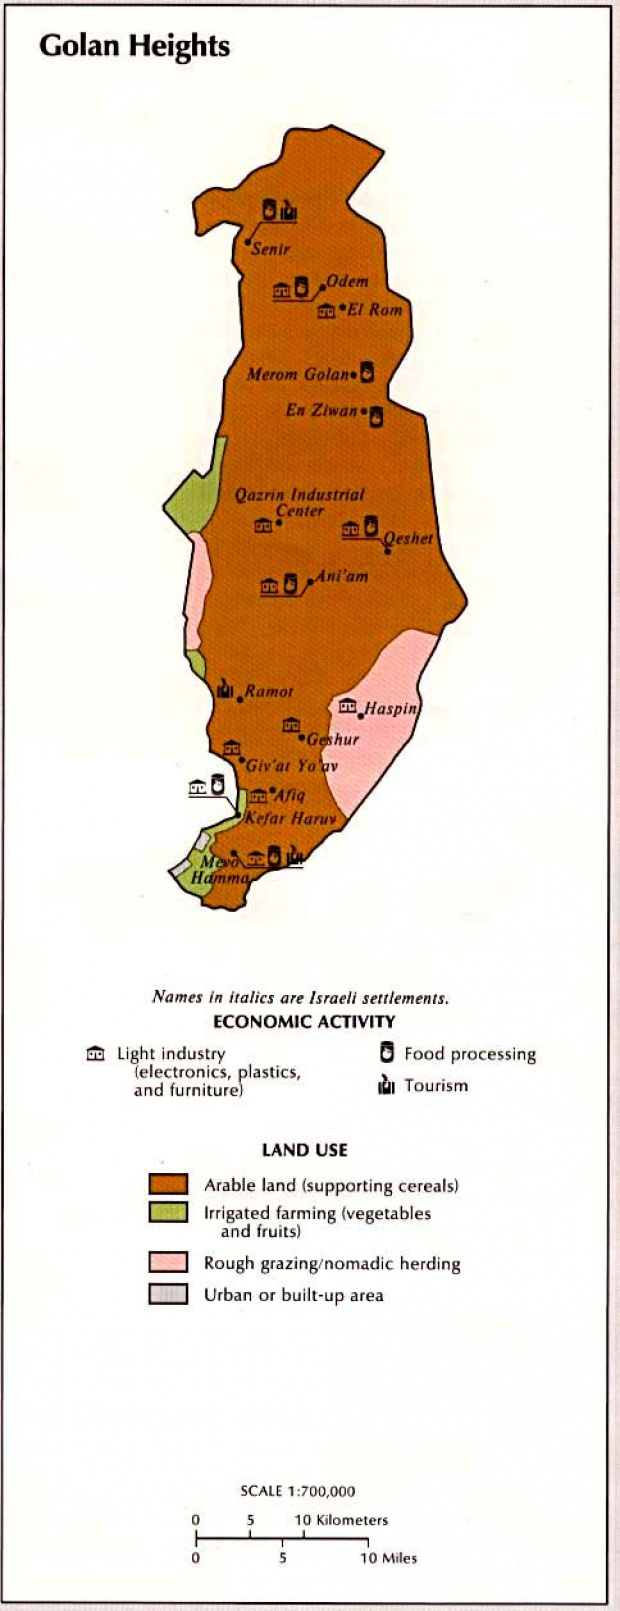 Golan Heights Economic Activity and Land Use Map